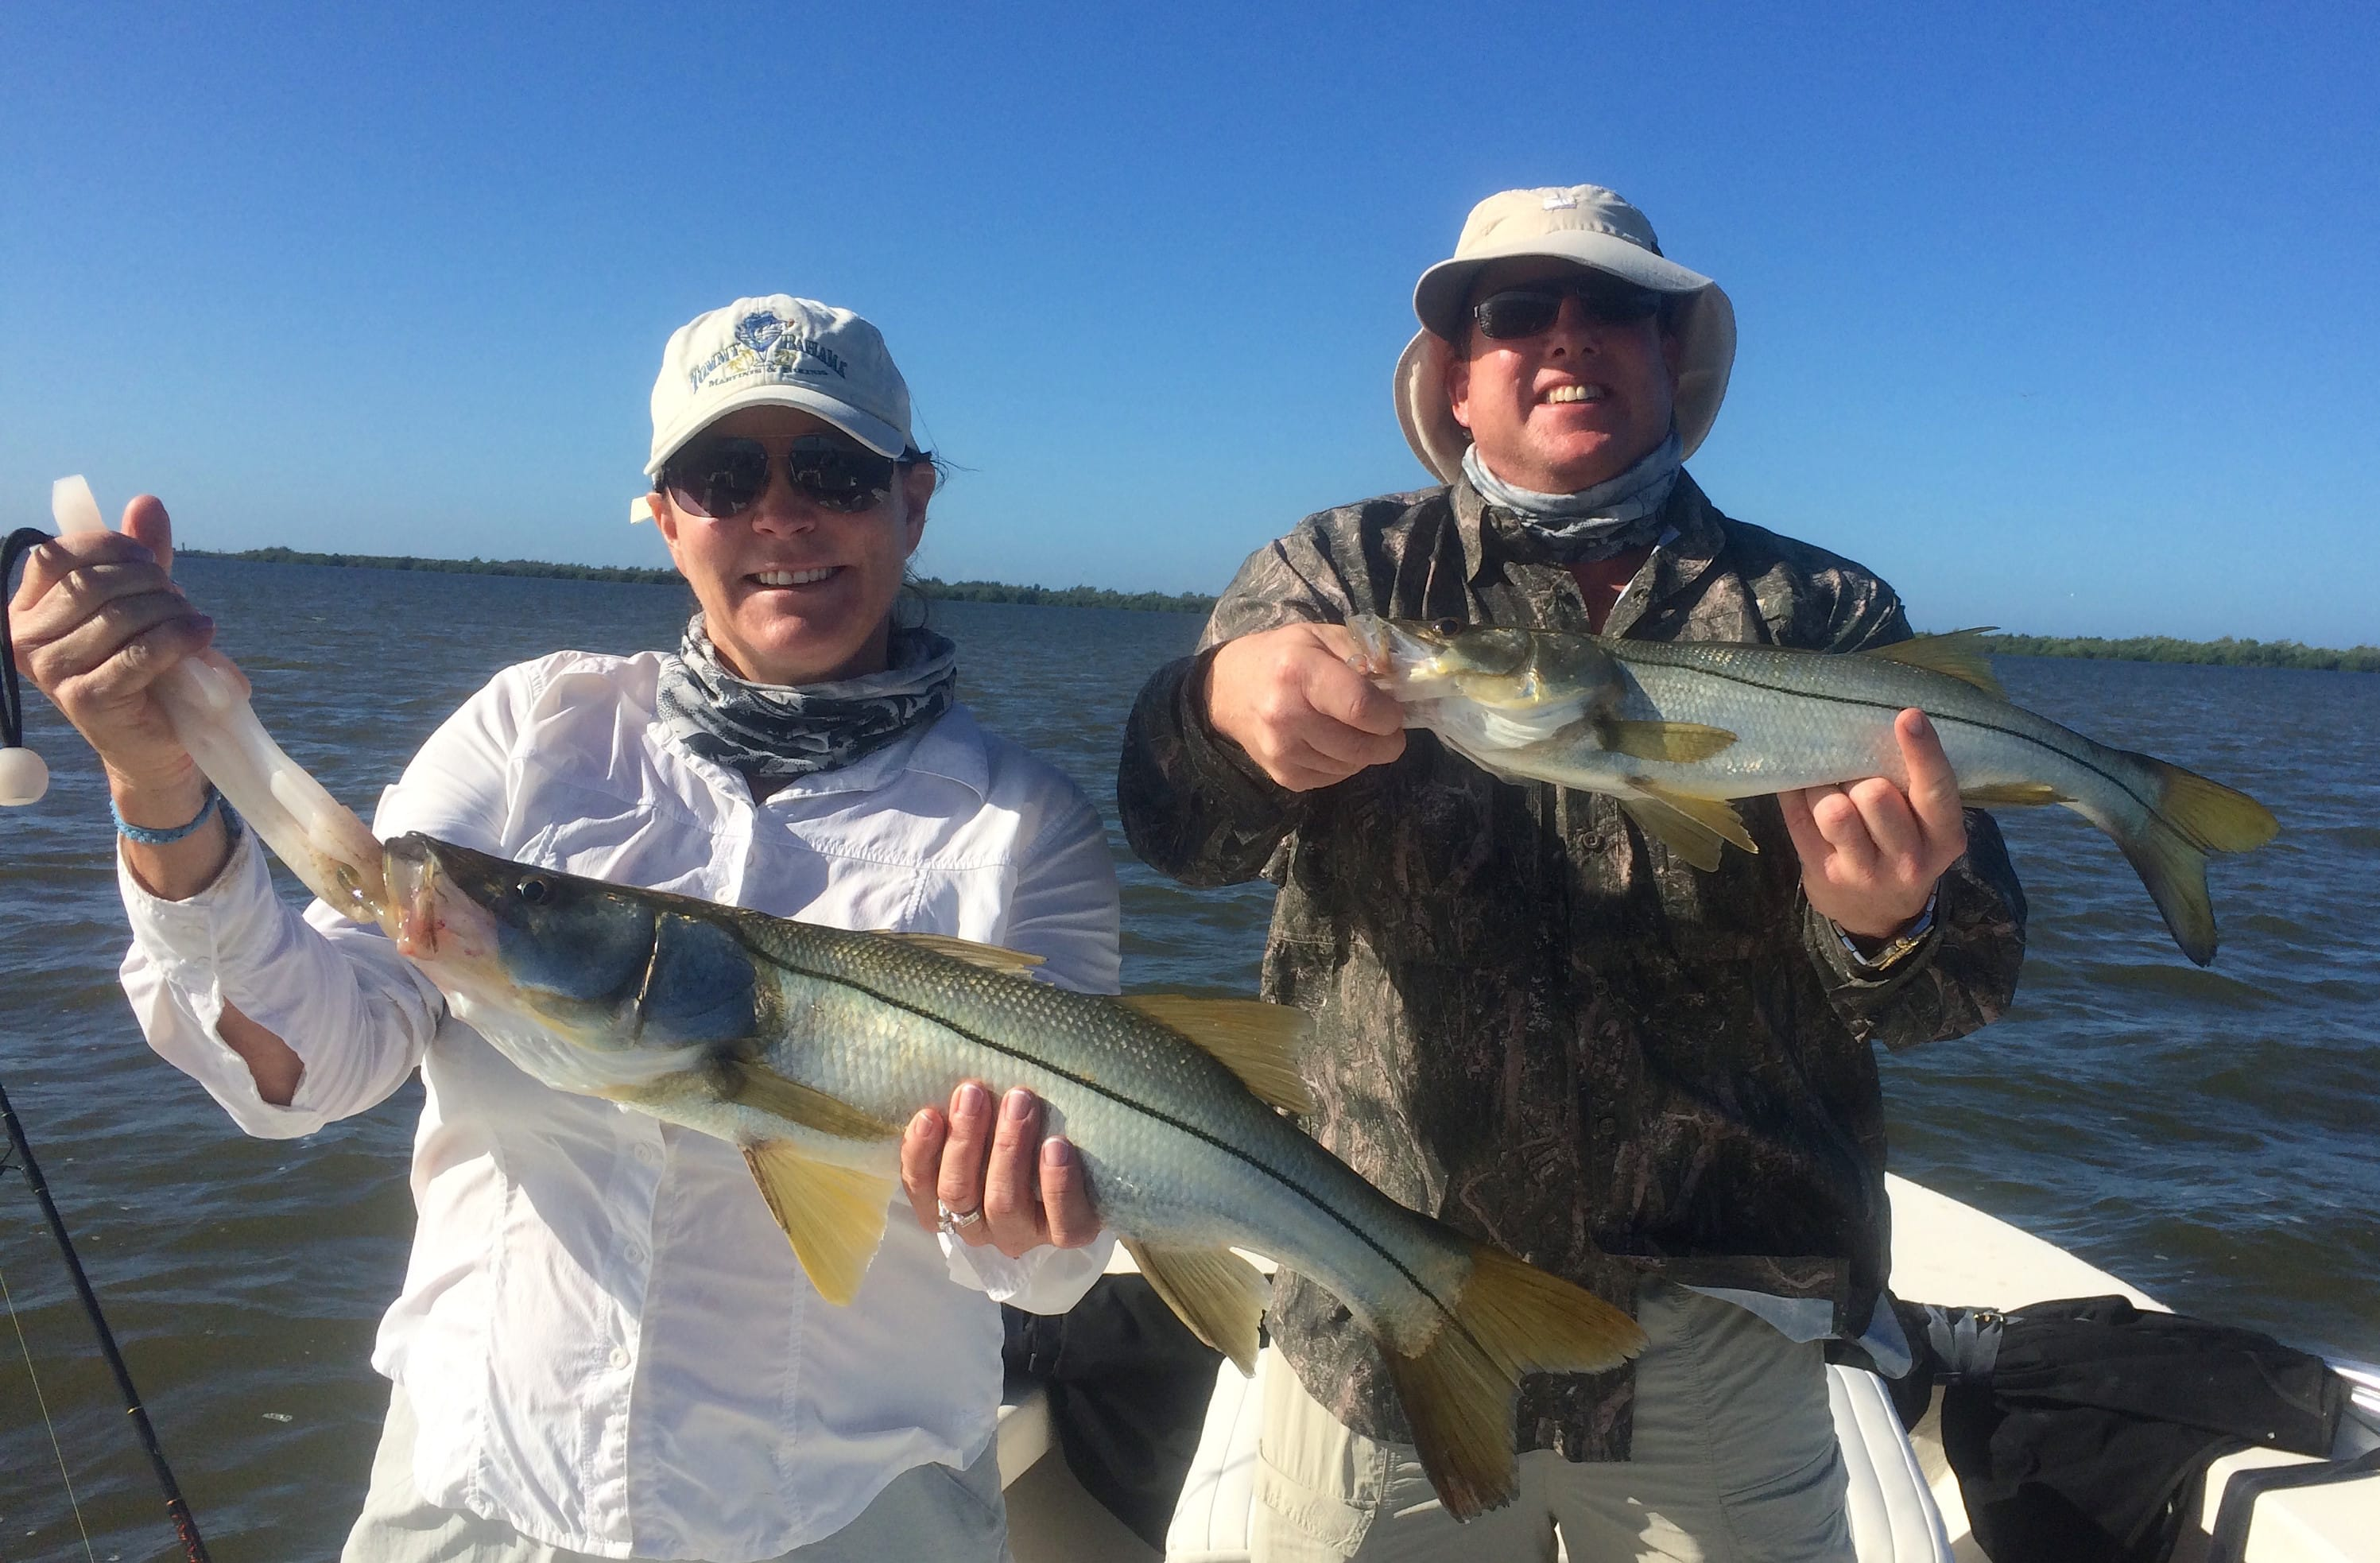 Fort myers fishing may 23 2017 fort myers fishing report for Fishing in fort myers